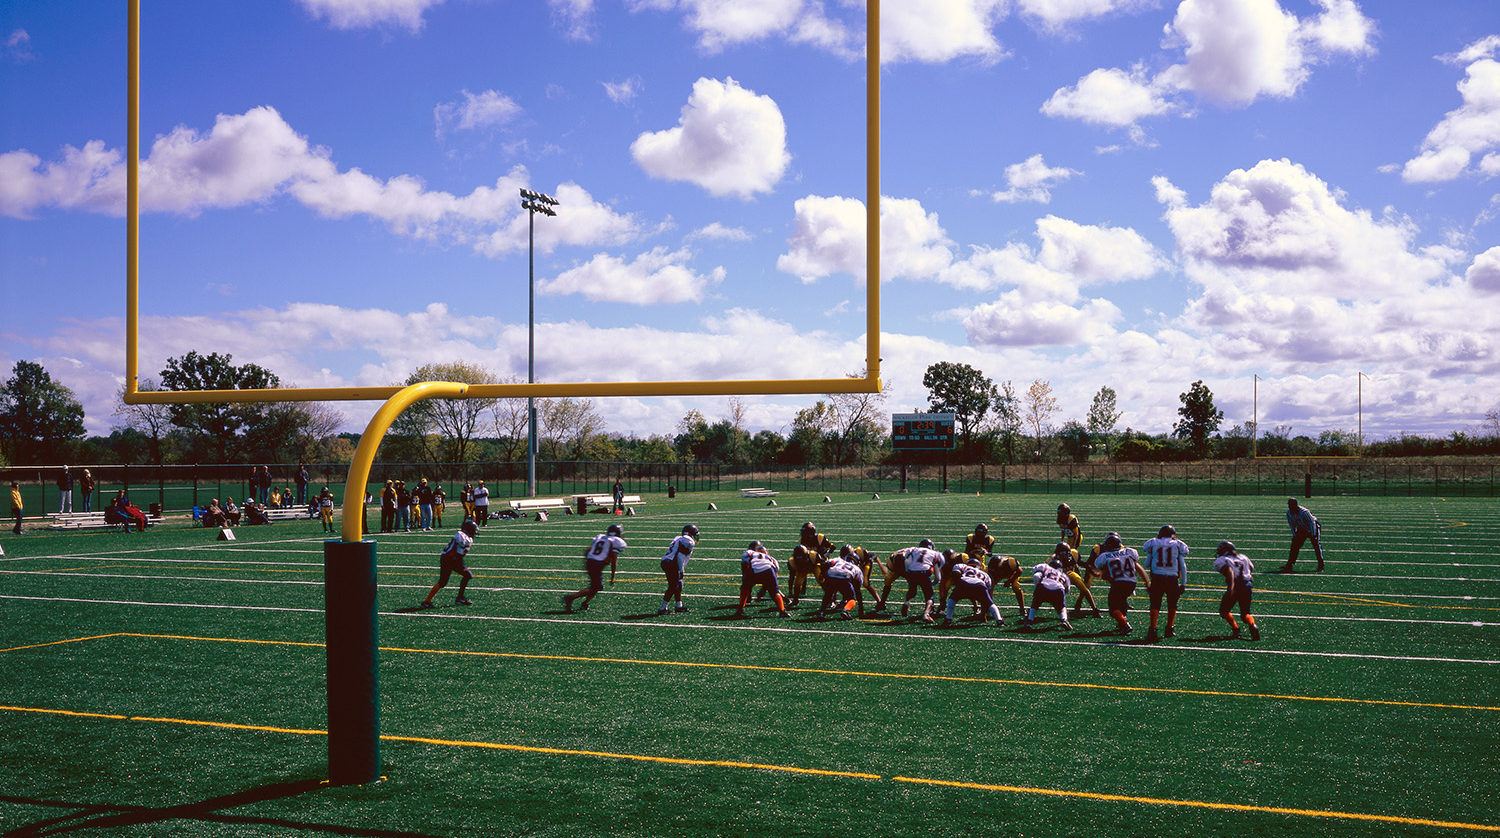 Waukegan Park District Outdoor Sports Complex football field